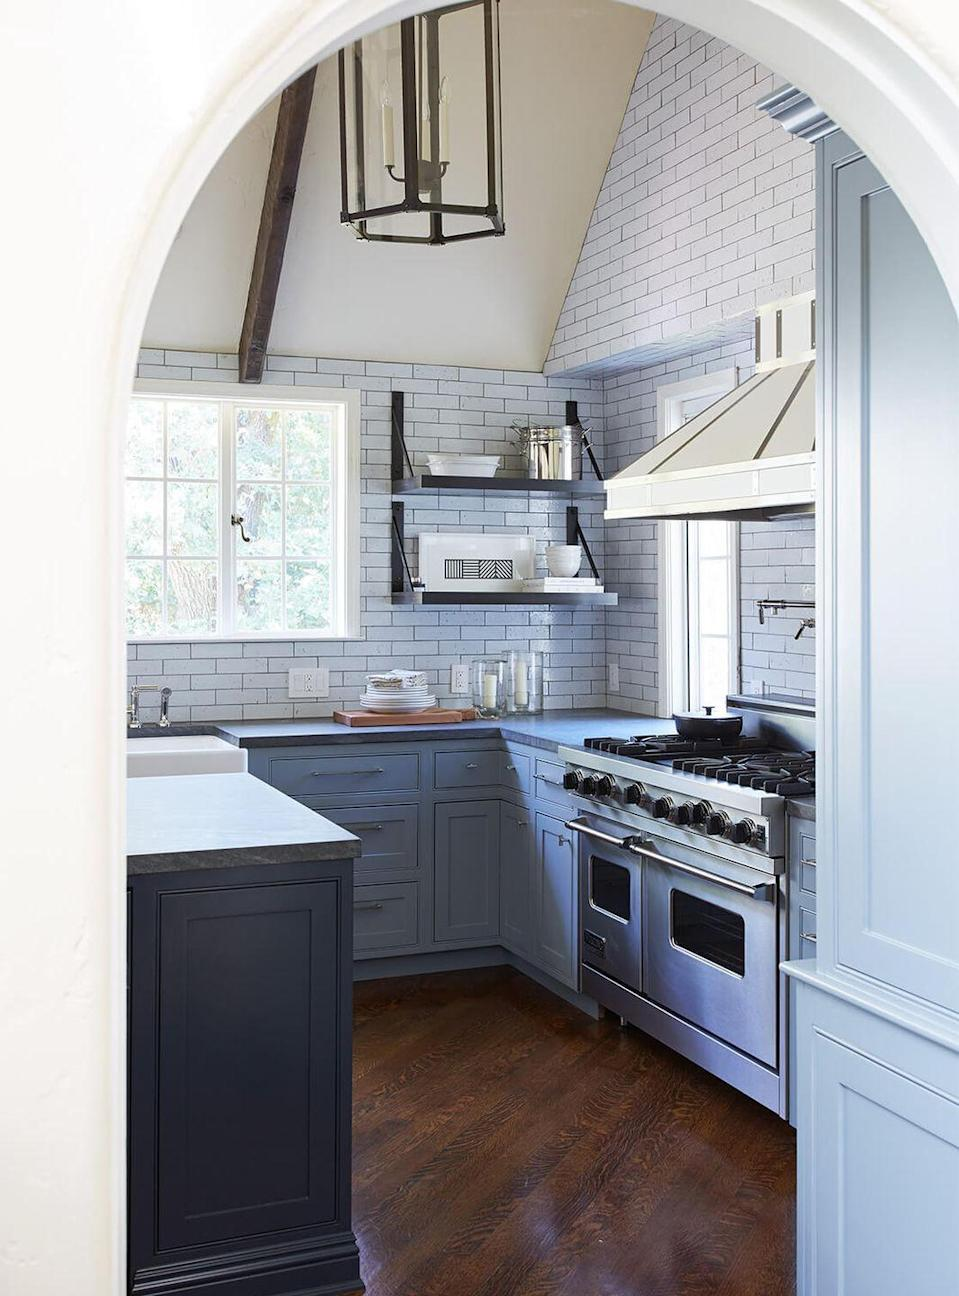 <p>Designed by Catherine Kwong, this kitchen is a contemporary classic that will age gracefully over the years. The steel gray cabinets contrast just a touch with the dark navy-gray kitchen island and cream ceilings for a balanced whole. White subway tiles and a wrought iron pendant is a great touch for a country chic kitchen. </p>